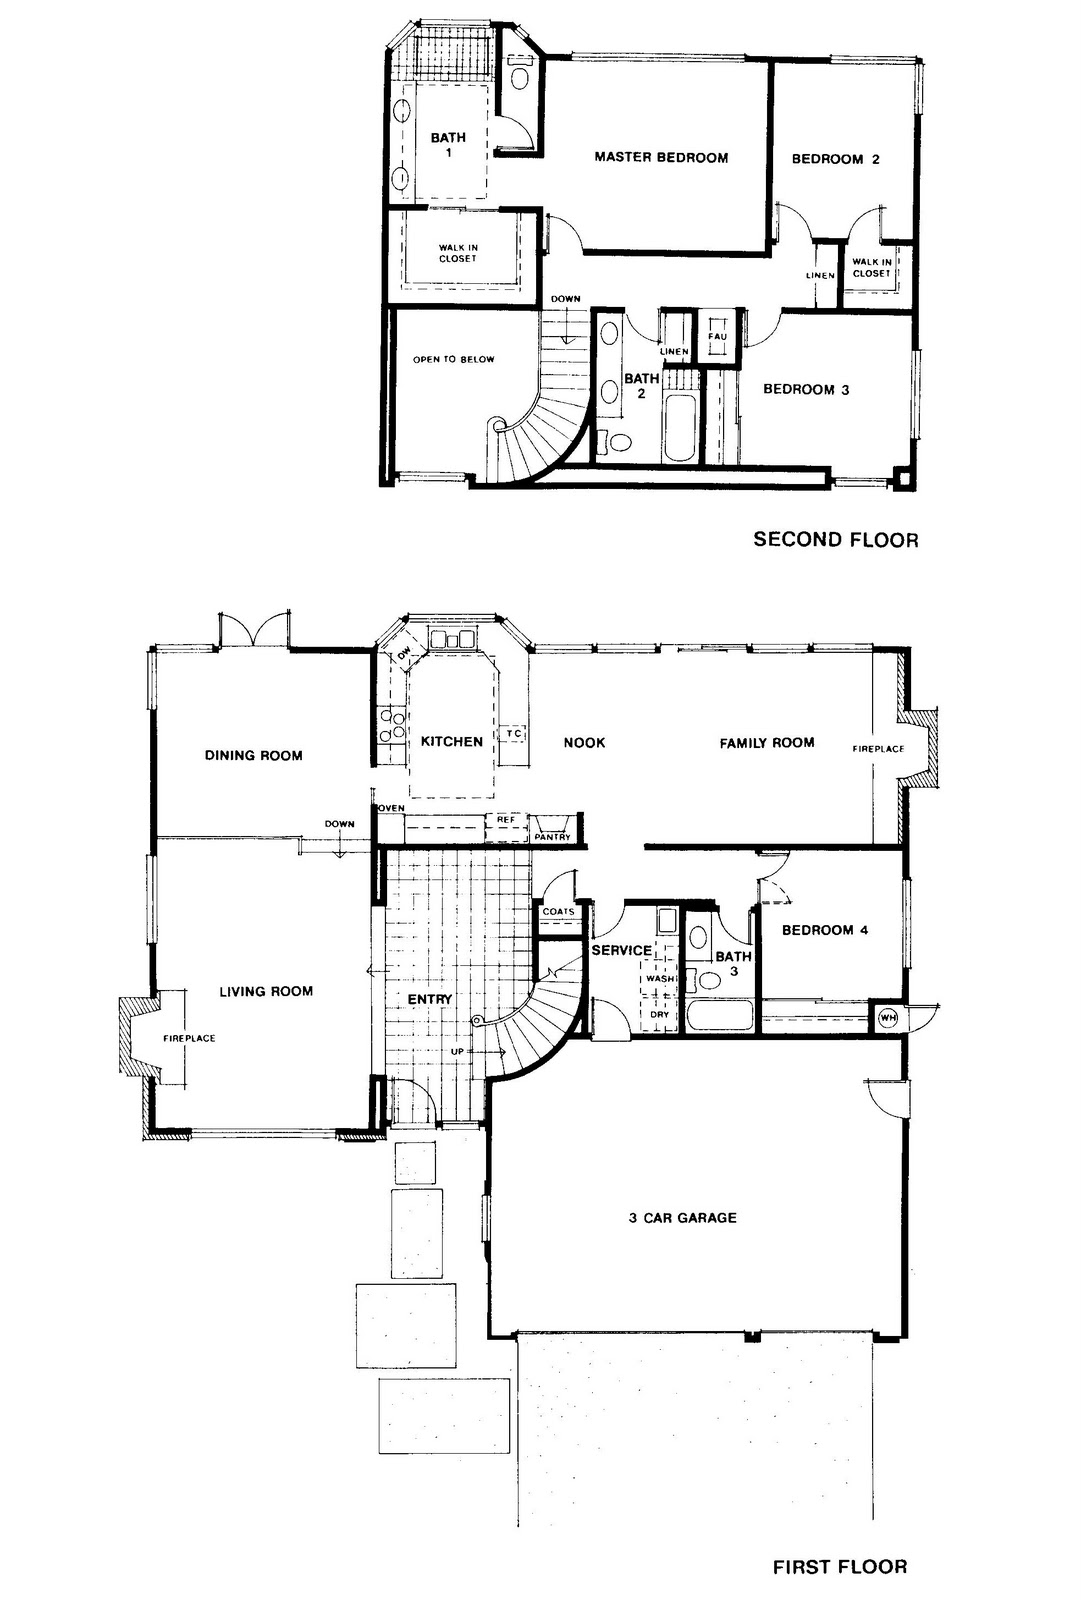 mid century modern and s era ottawa favourite plans south around 1978 the california builder lusk constructed a community of homes in orange country called nohl ranch below is the bennington plan by lusk